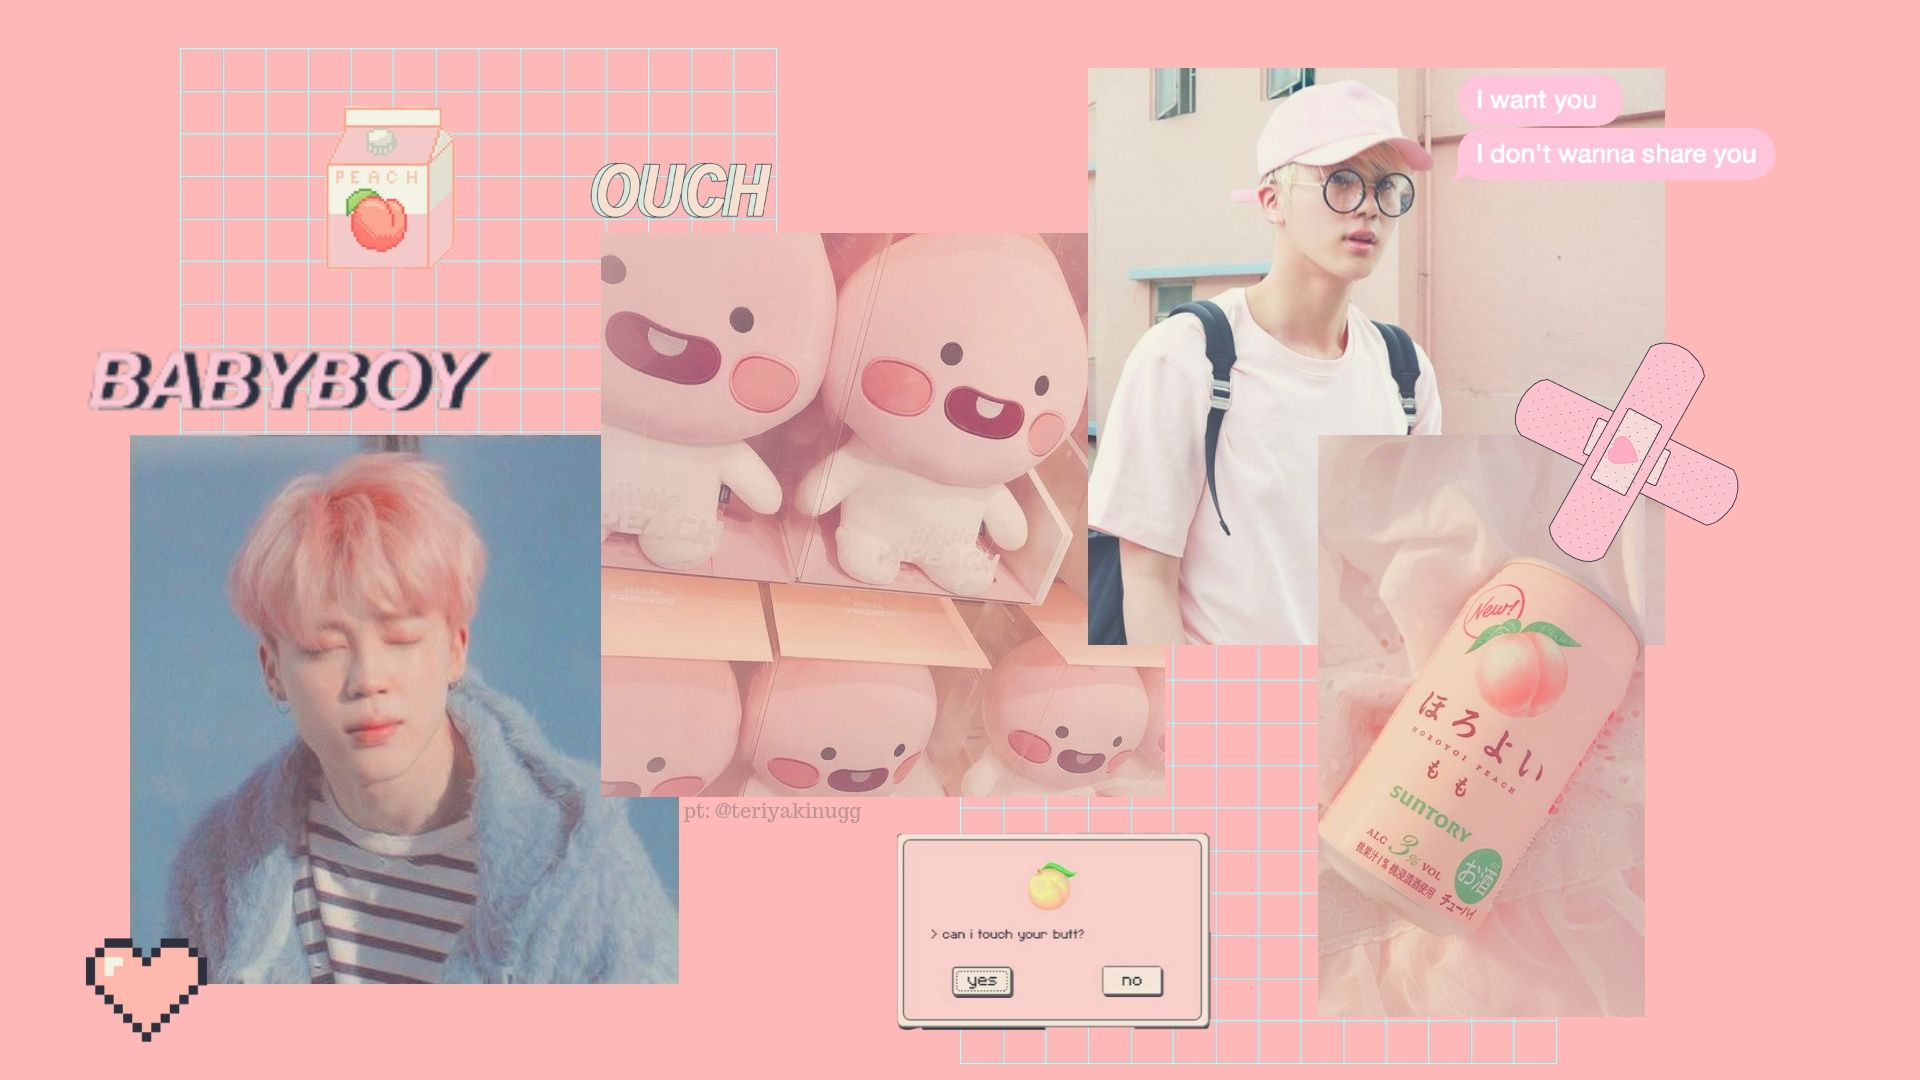 Tons of awesome bts aesthetic laptop wallpapers to download for free. BTS Pink Aesthetic Desktop Wallpapers - Top Free BTS Pink ...